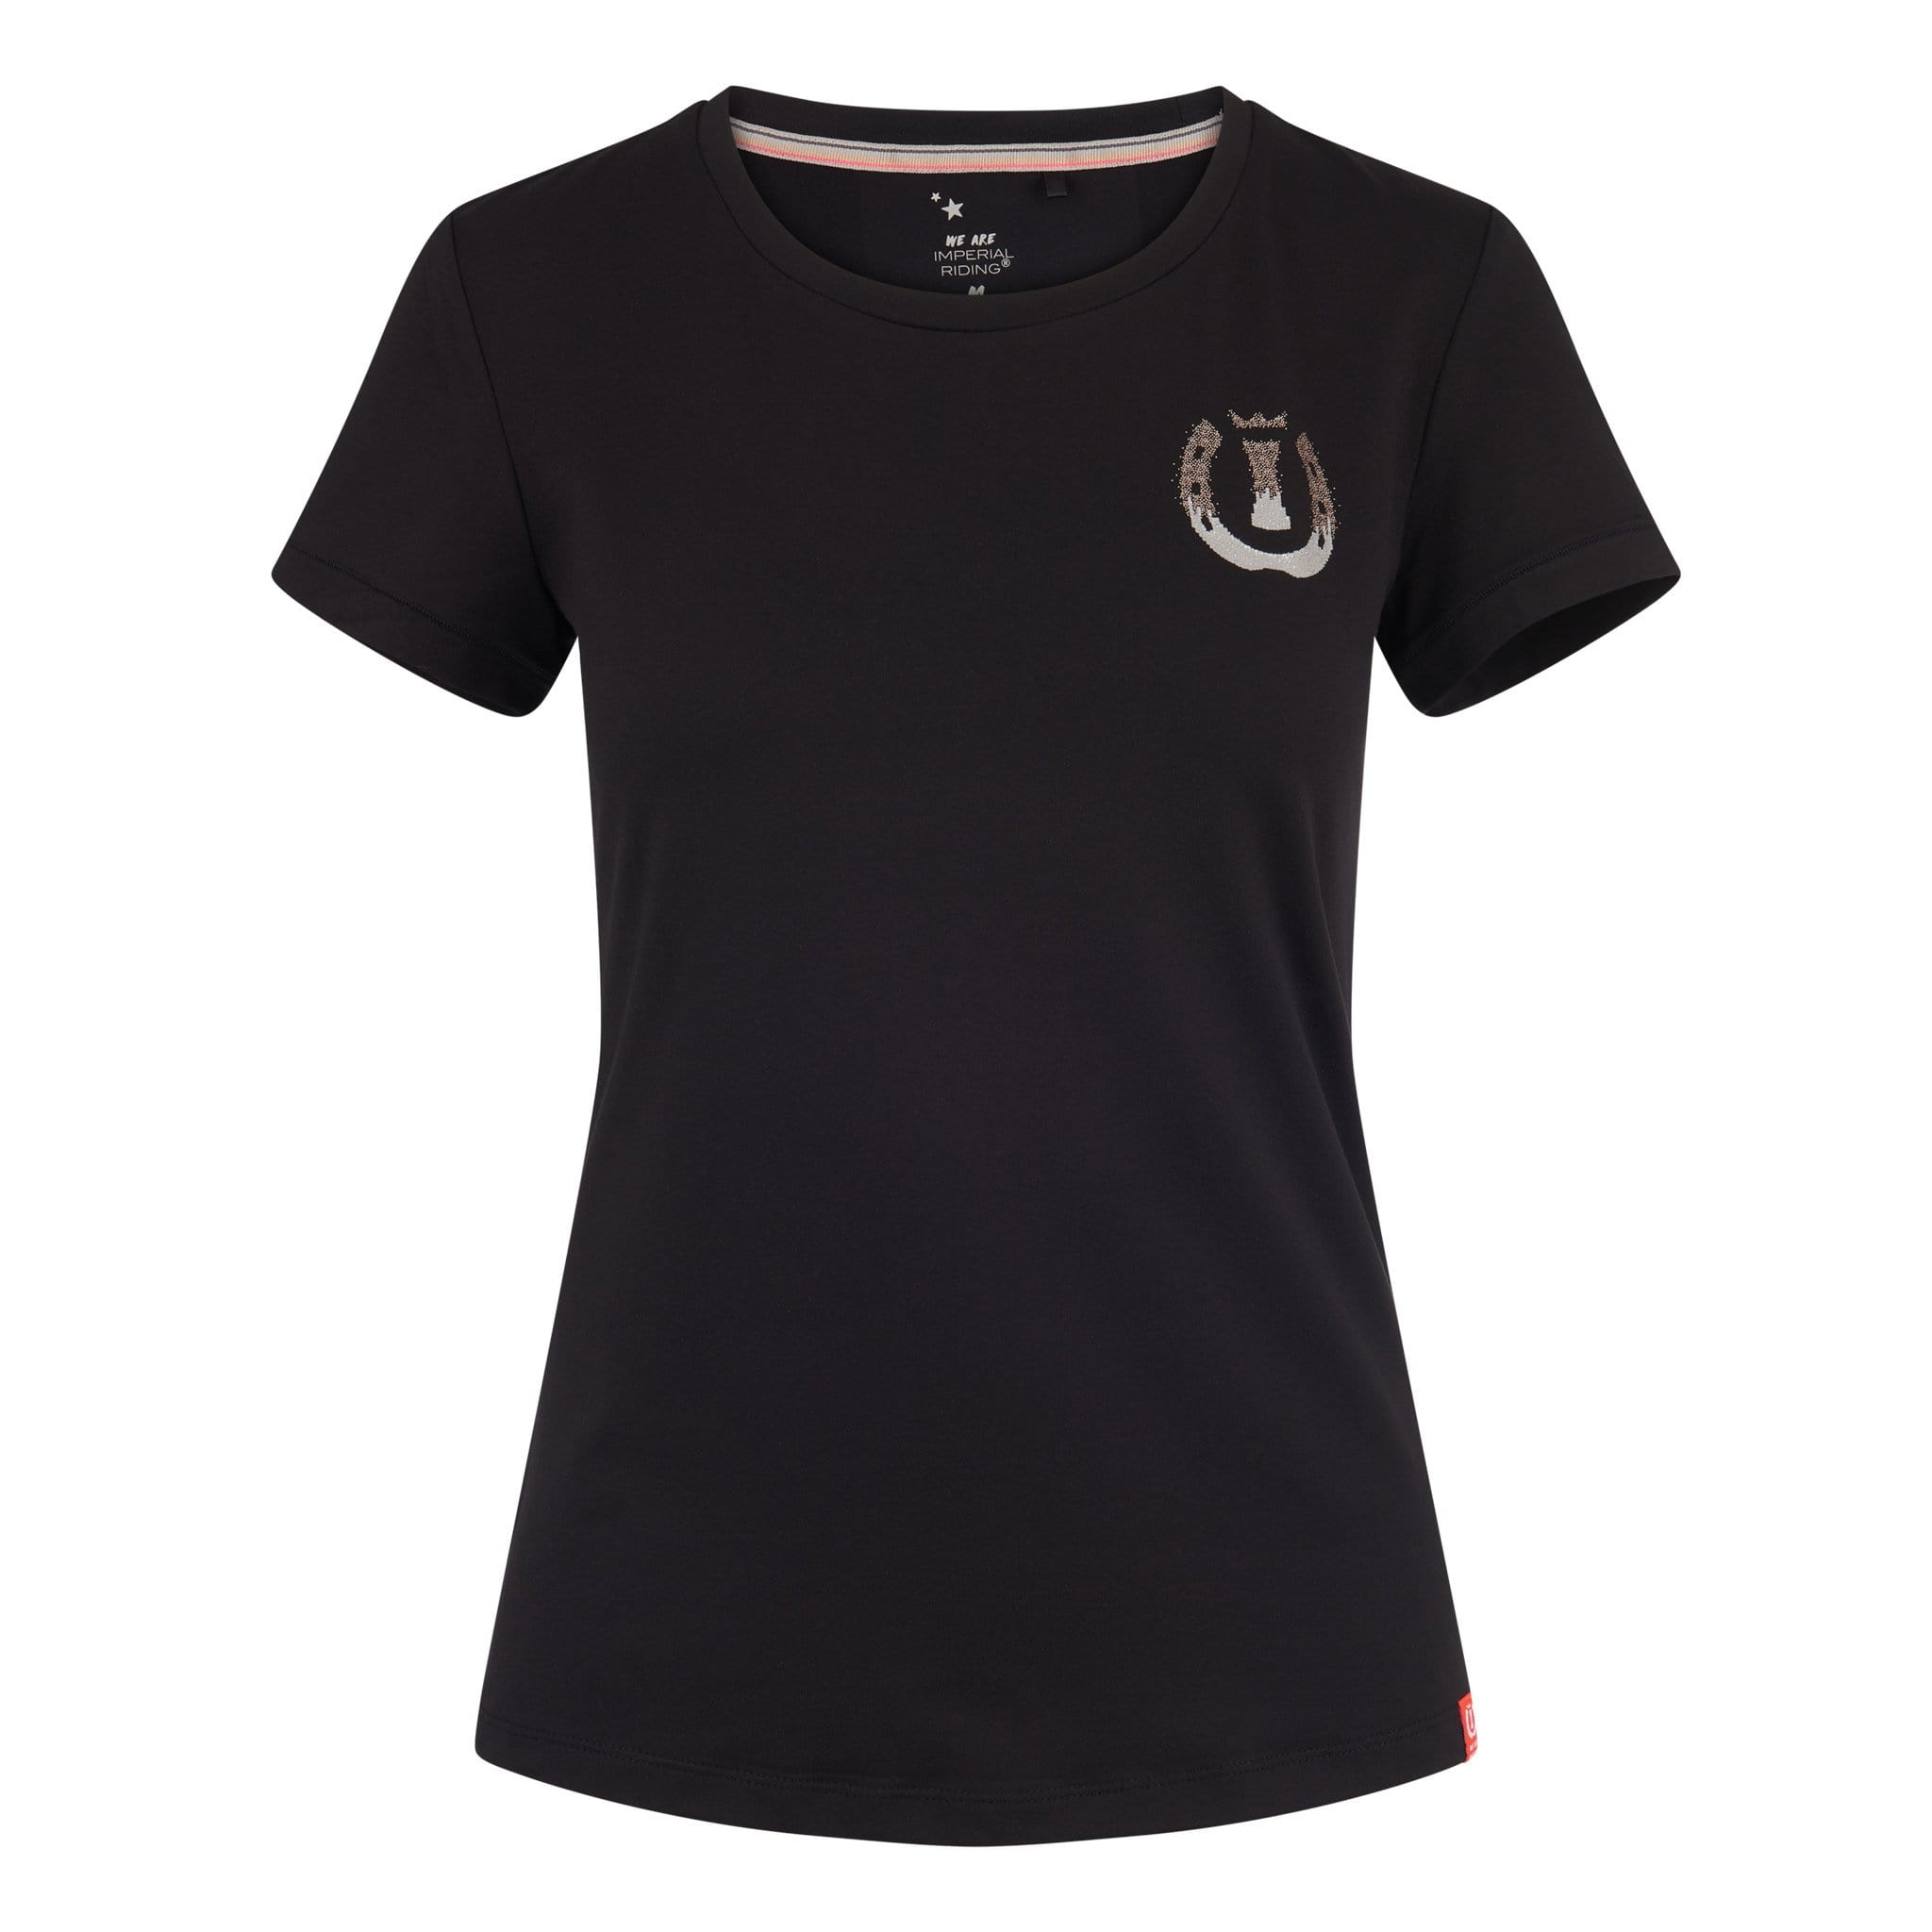 Imperial Riding Let's Play Short Sleeve T-Shirt KL35119013 In Black With Rose Gold Logo